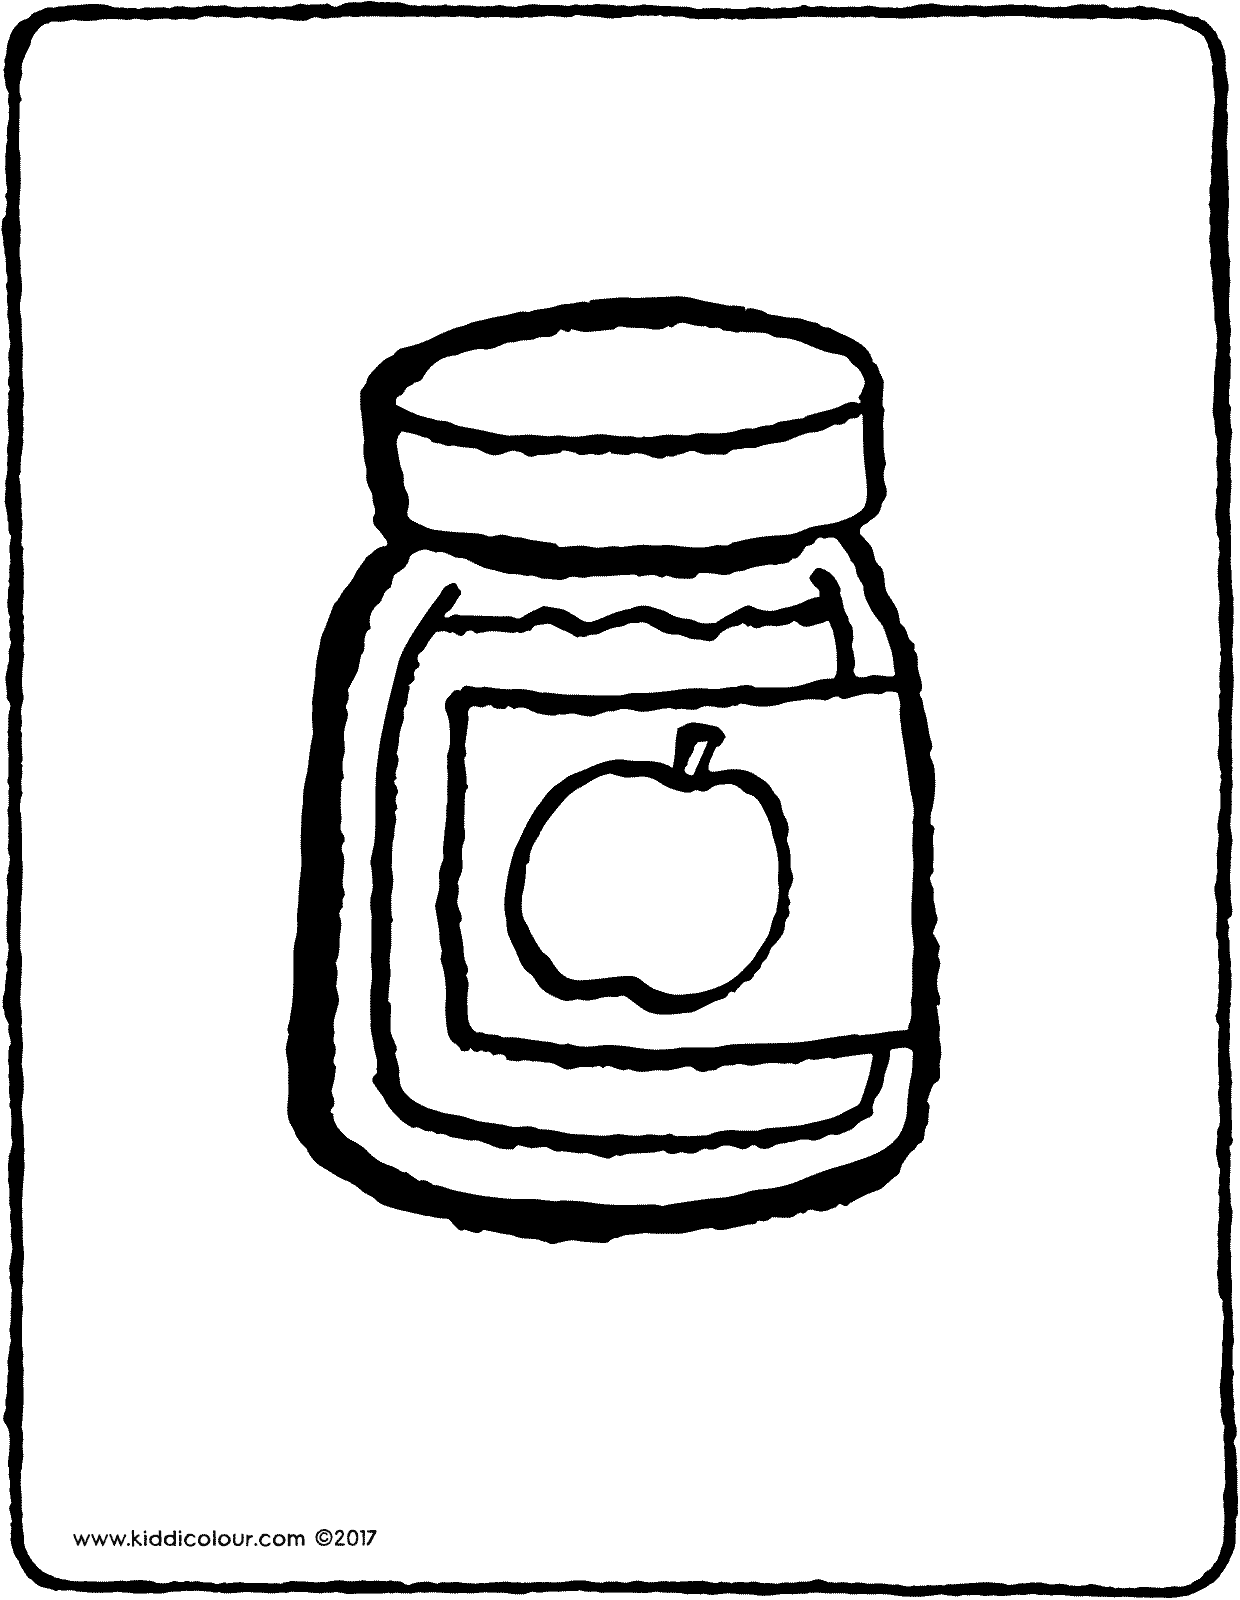 apple sauce in a jar colouring page 01V